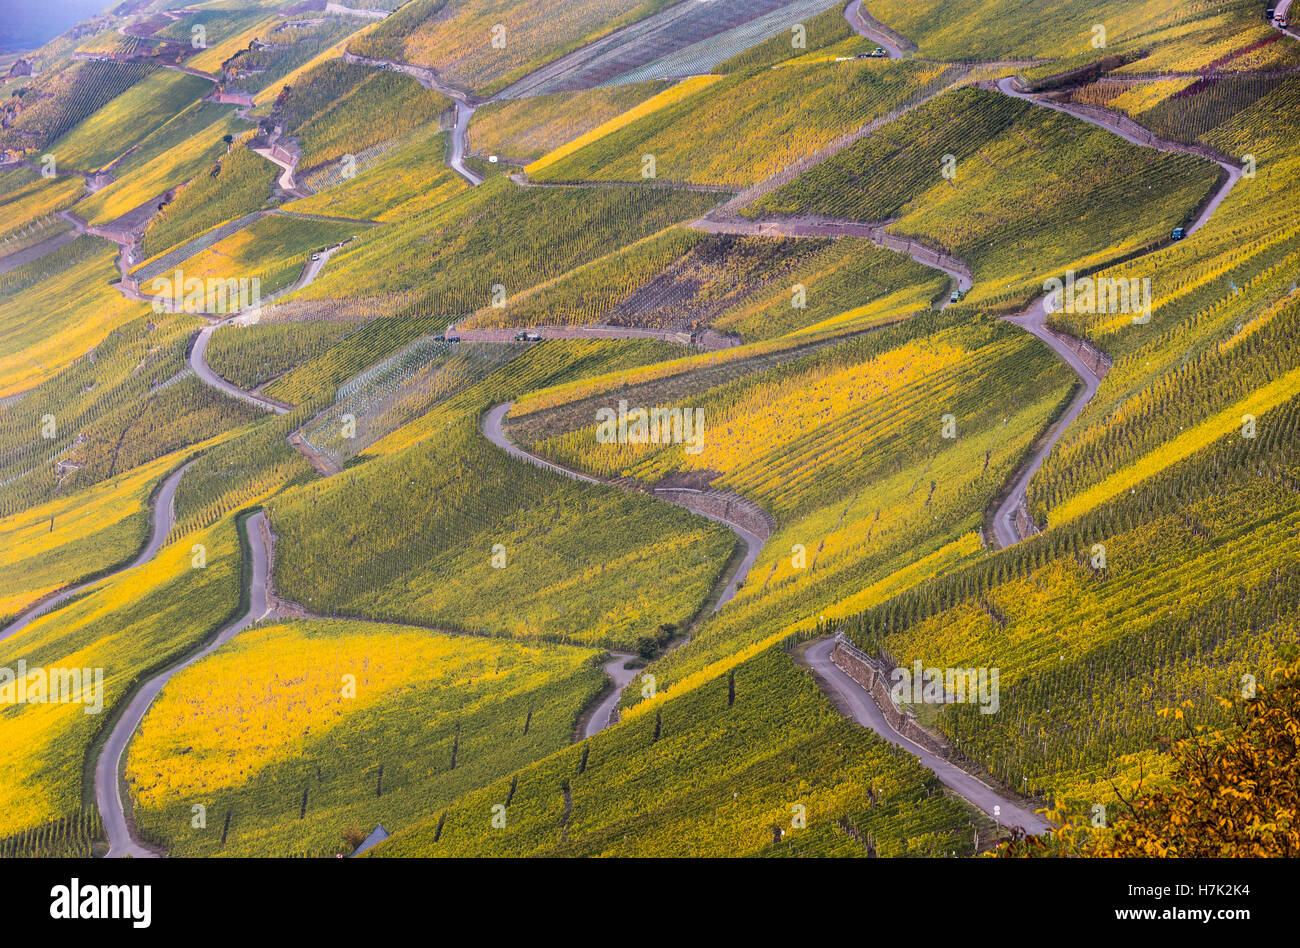 Moselle Valley, vineyards, mostly Riesling grapes, between Bernkastel-Kues and Graach, Germany, fall, autumn colors, Stock Photo